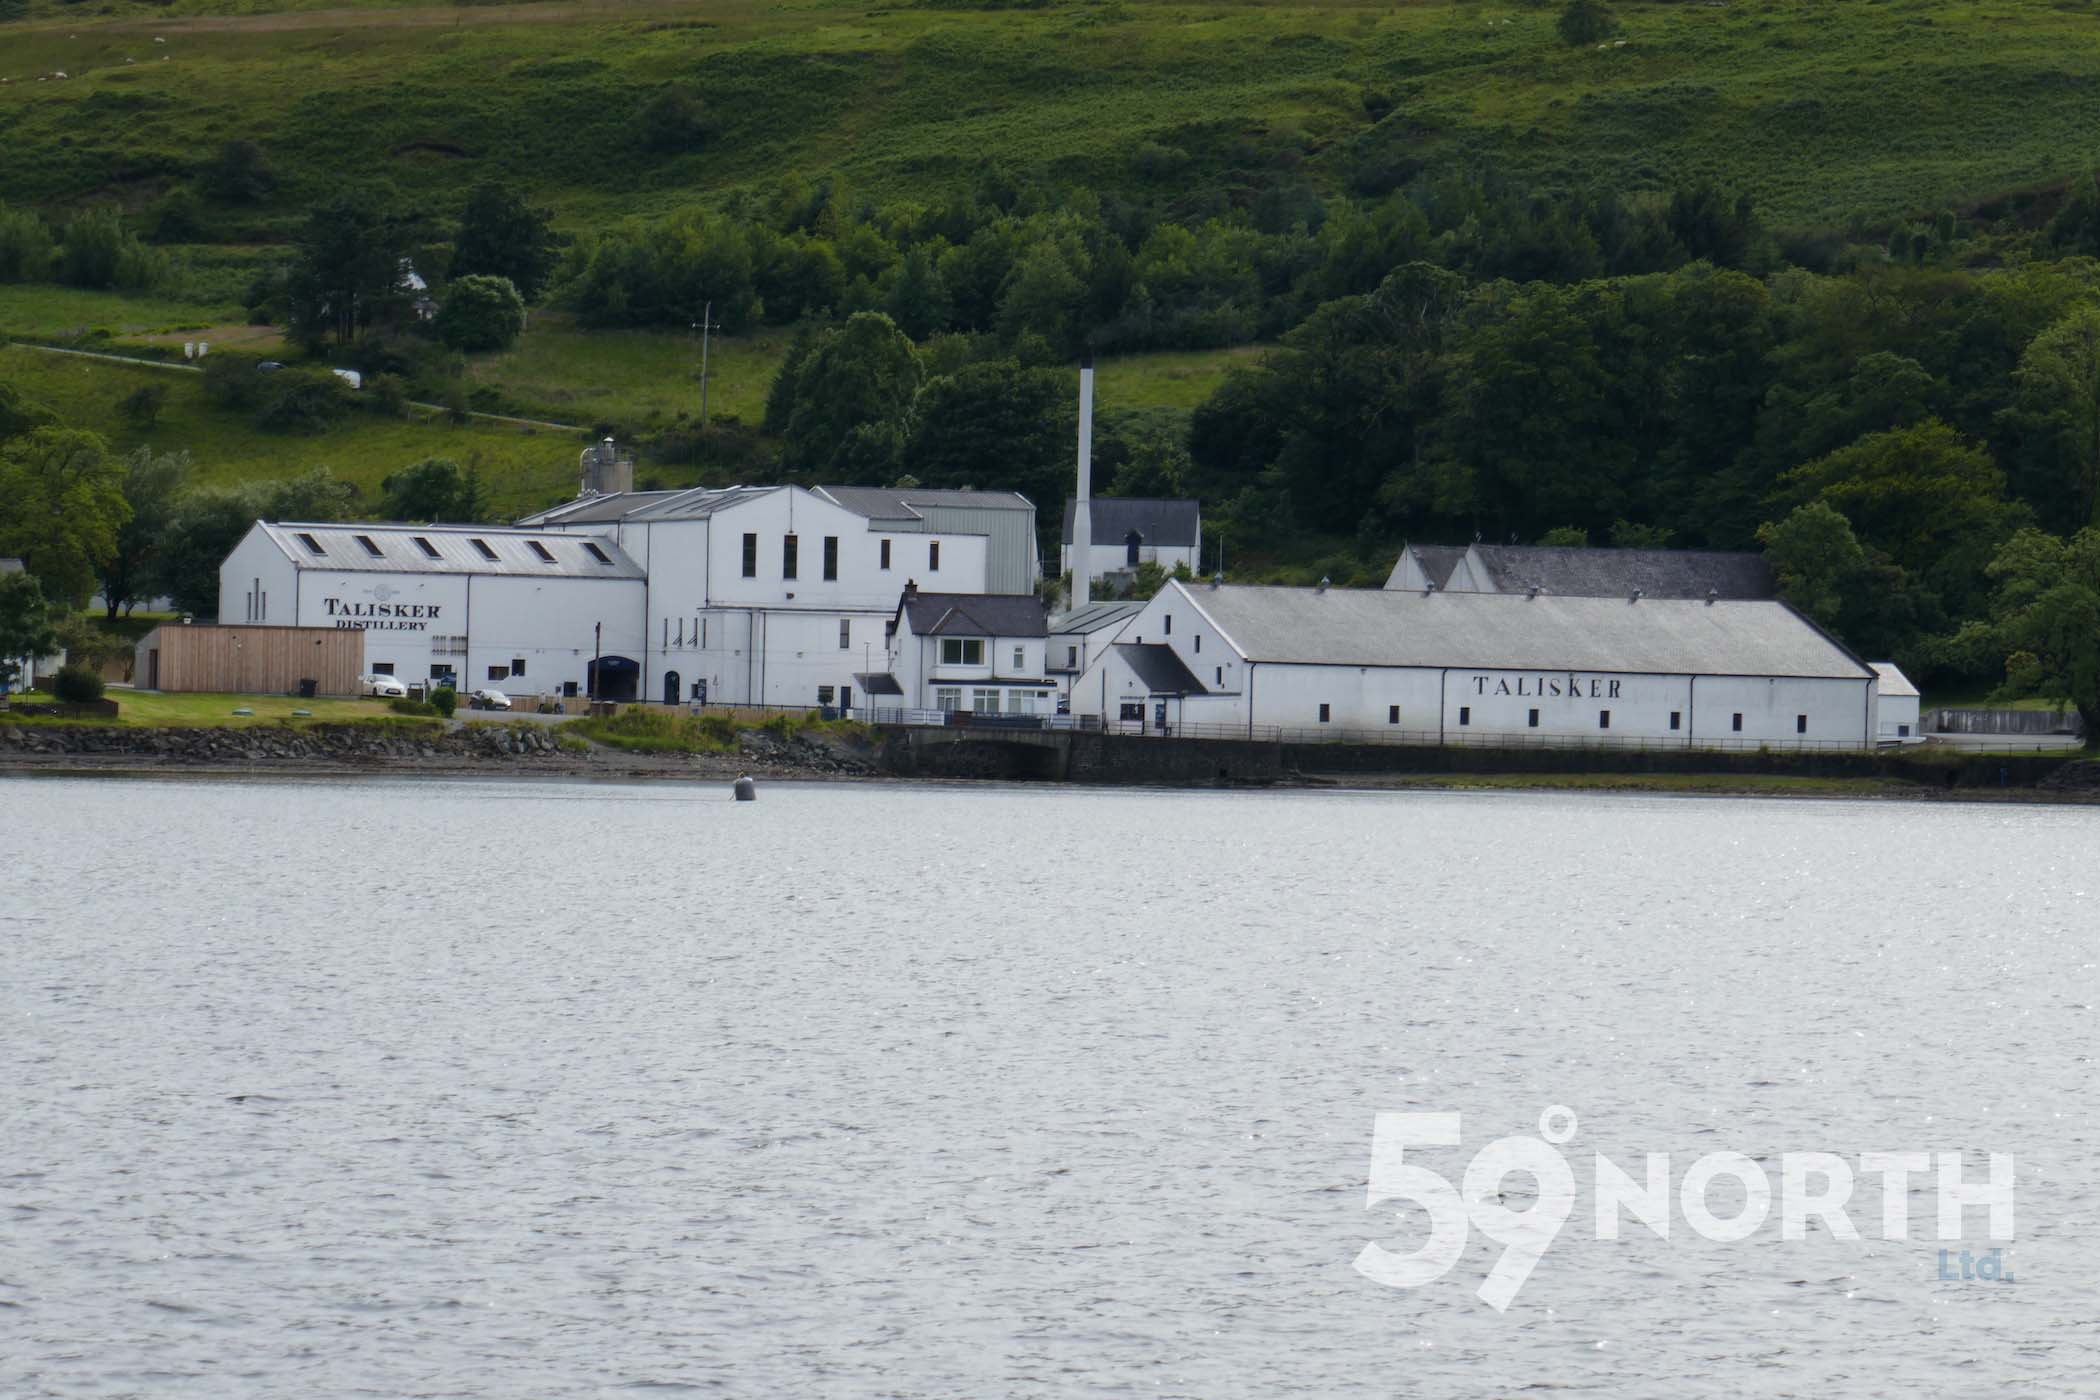 A visit to the Talisker distillery on Isle of Skye! Leg 8, 2017: Sweden to Scotland 59-north.com